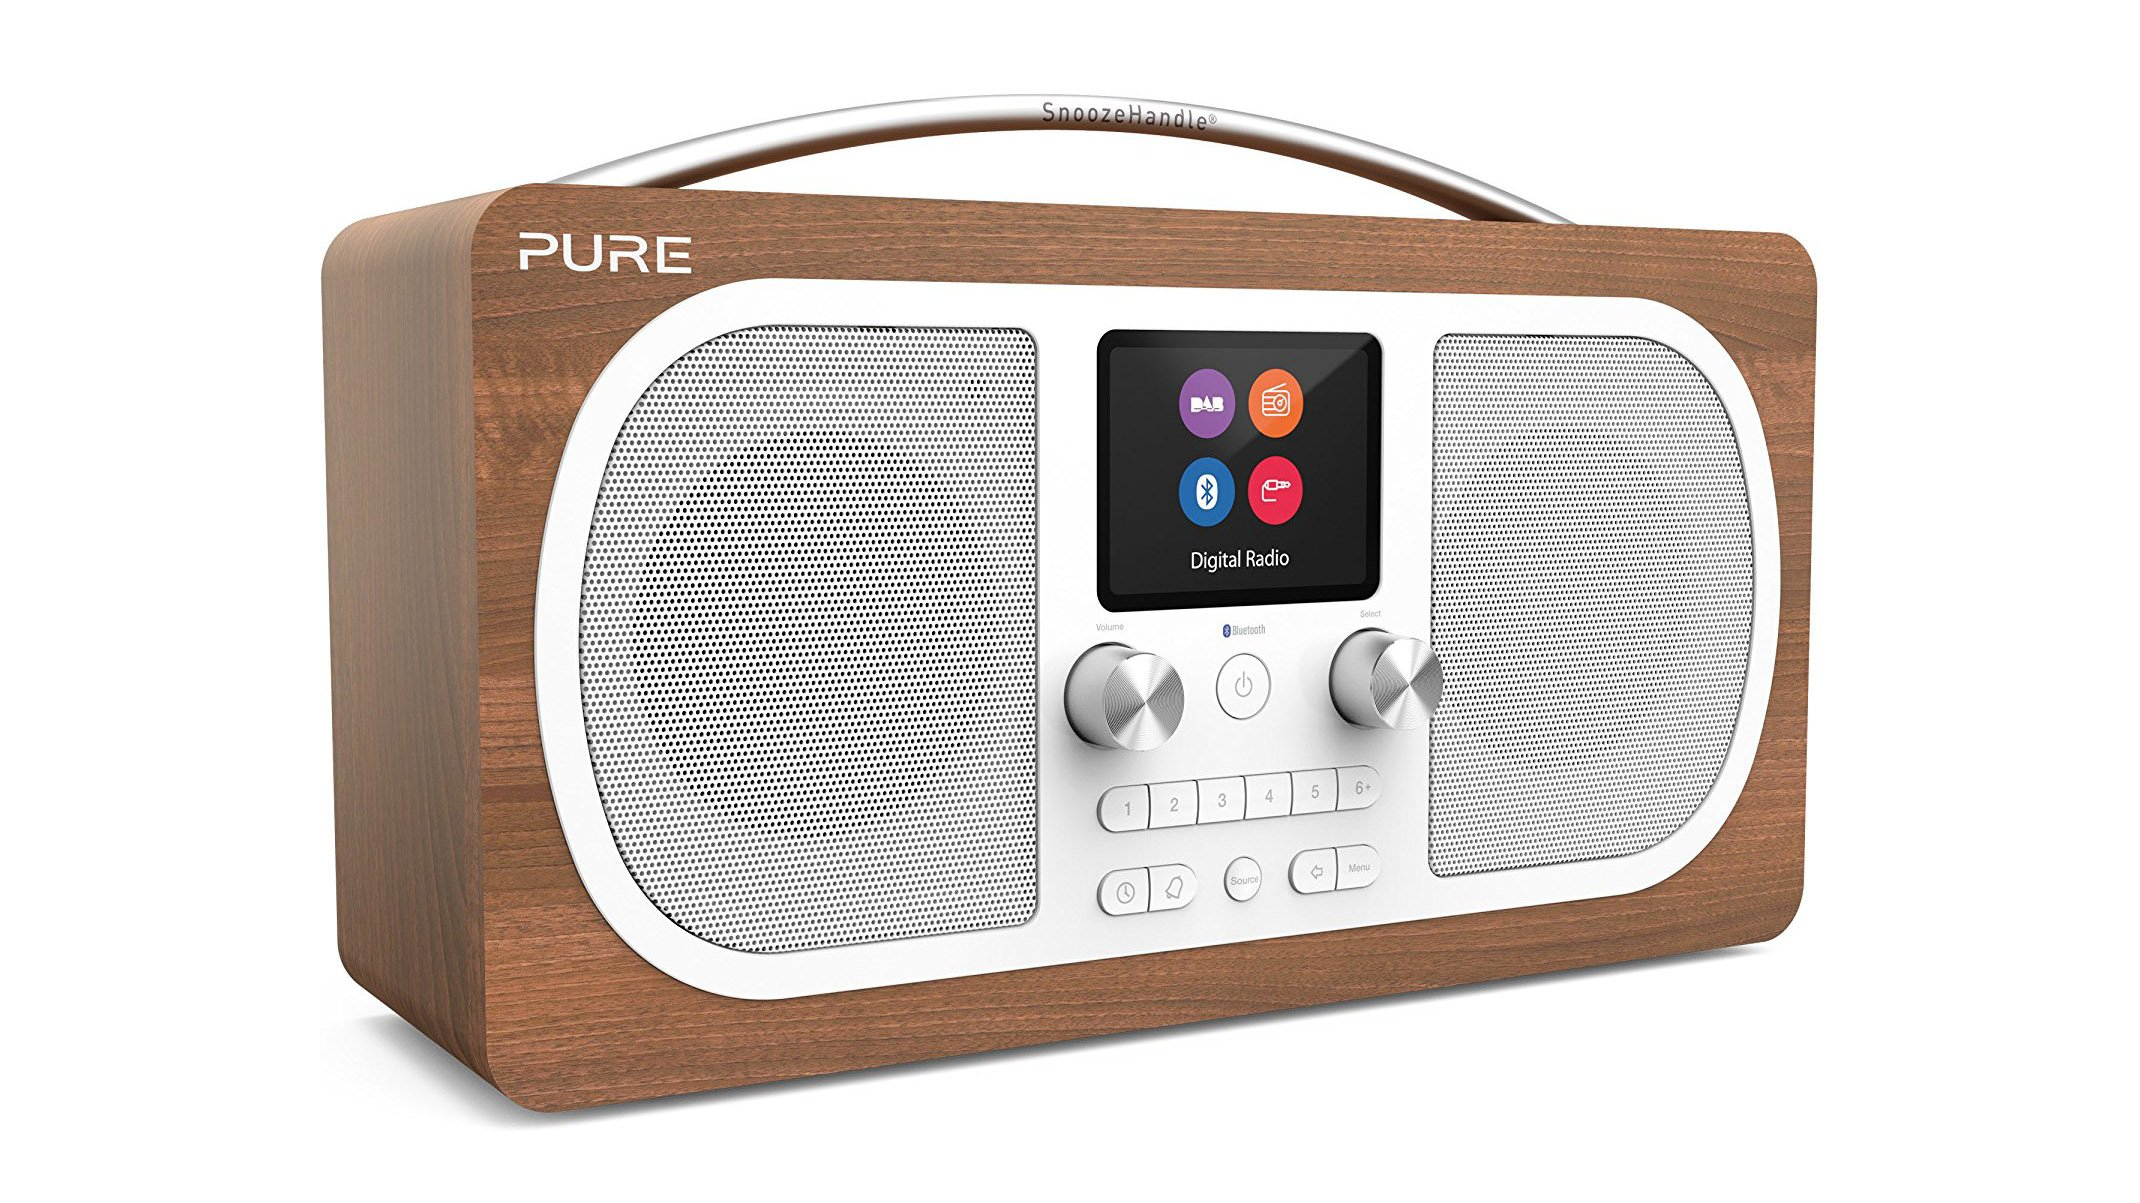 Best DAB radio 2020: The best digital radios you can buy